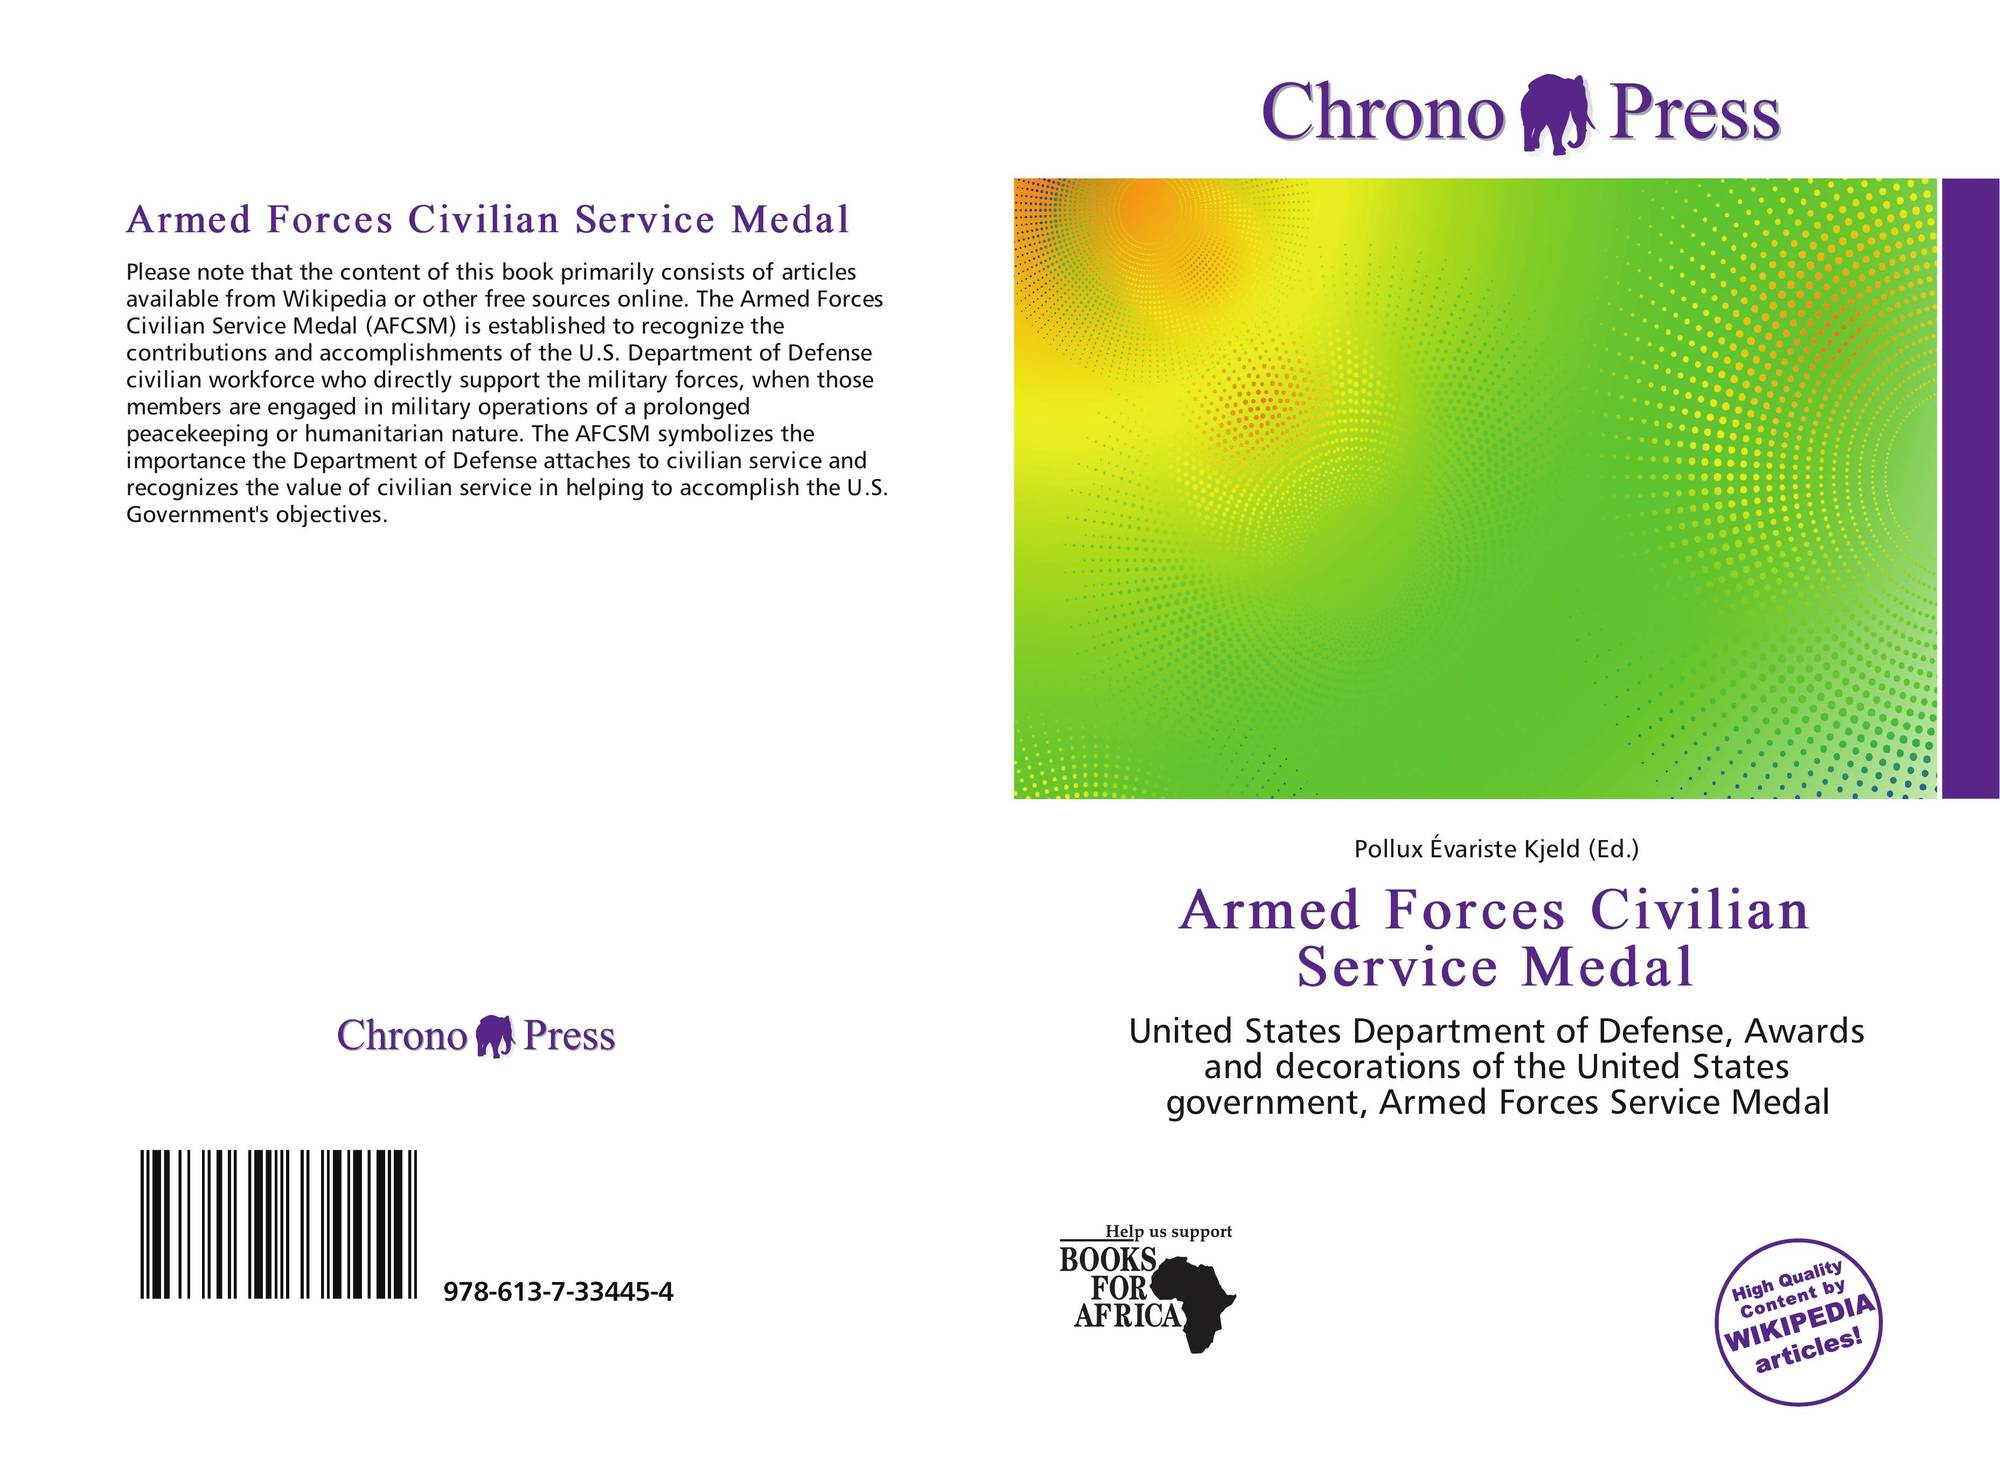 Armed Forces Civilian Service Medal, 978-613-7-33445-4